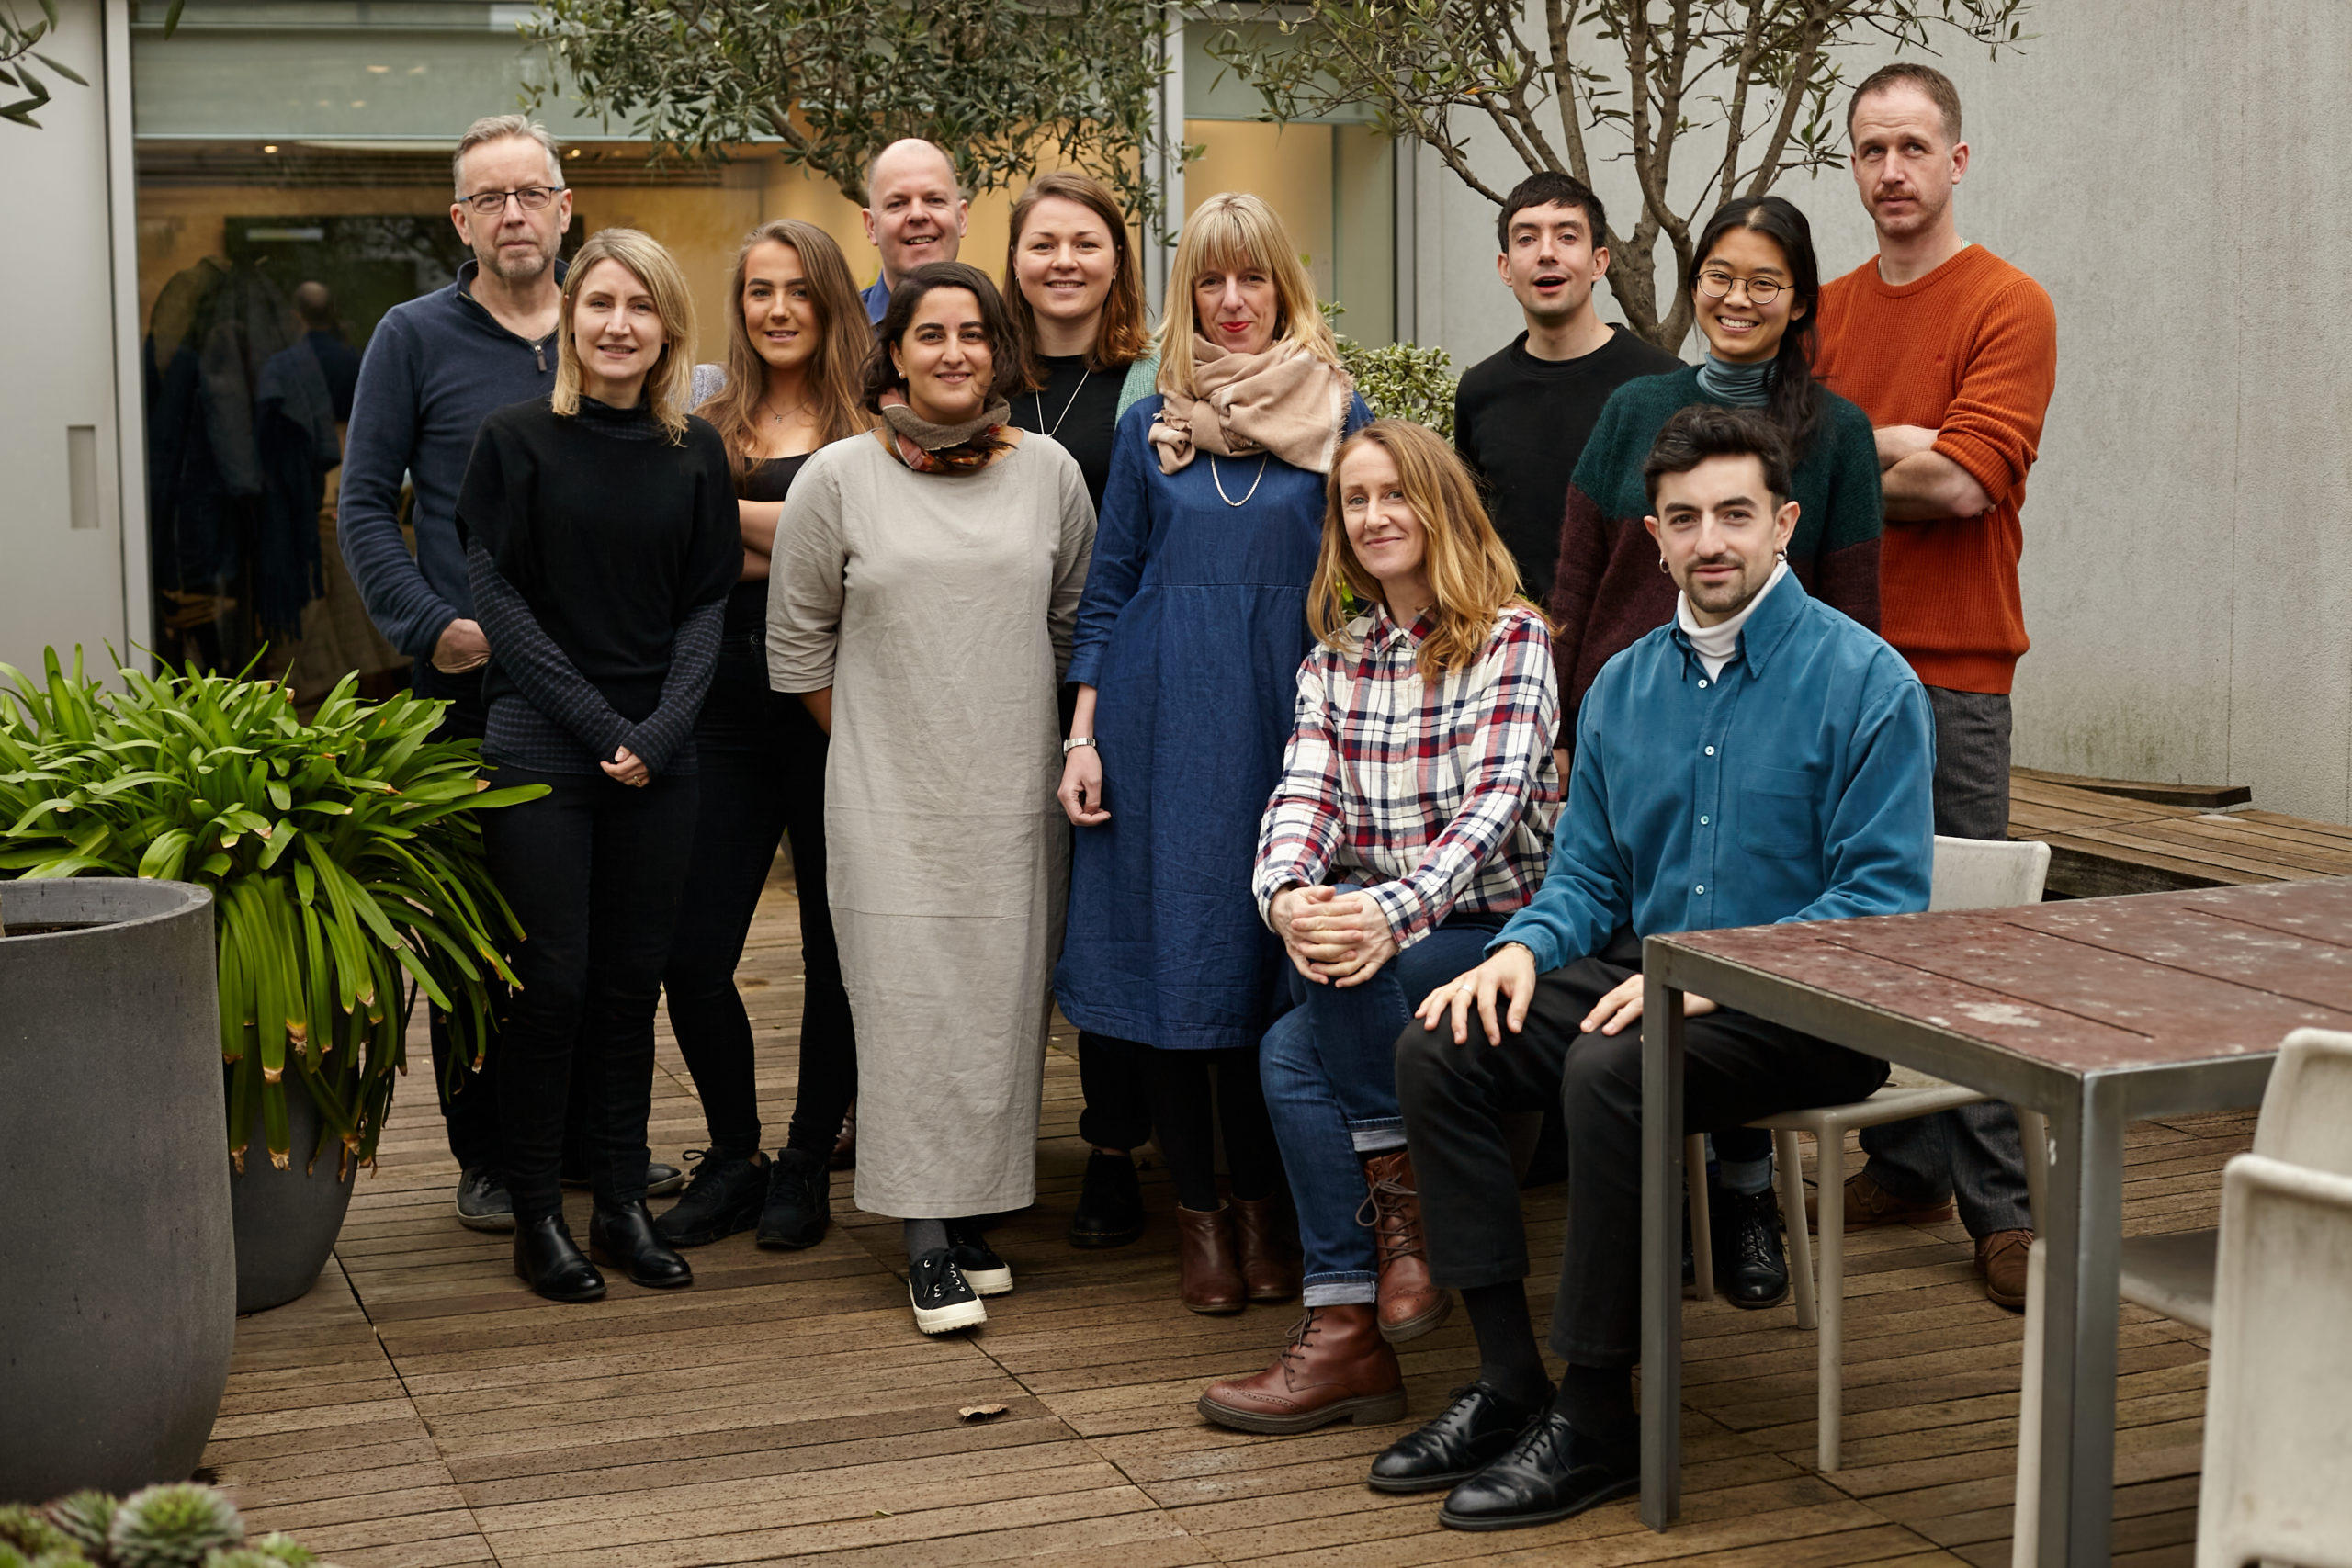 Design South East – Our team is growing! To meet the increasing demand for our services across the south east region, our team has expanded.